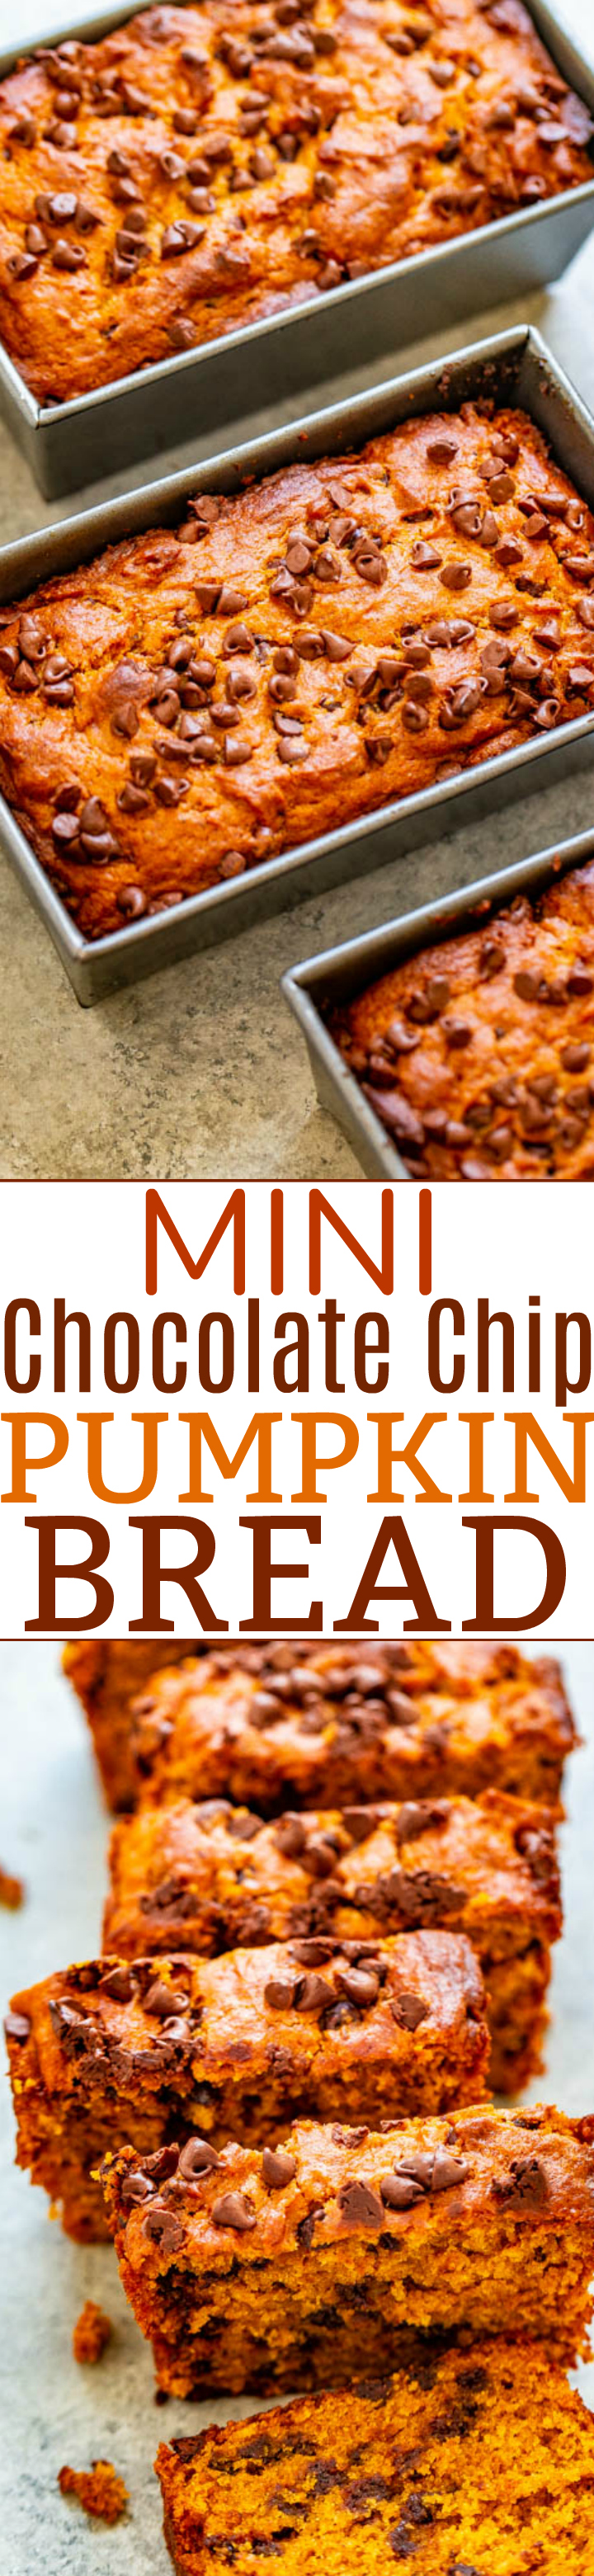 Mini Chocolate Chip Pumpkin Bread - Super soft, tender, moist pumpkin bread that's loaded with chocolate chips!! The mini loaves are EASY, brimming will fall flavors, totally IRRESISTIBLE, and accidentally vegan!!